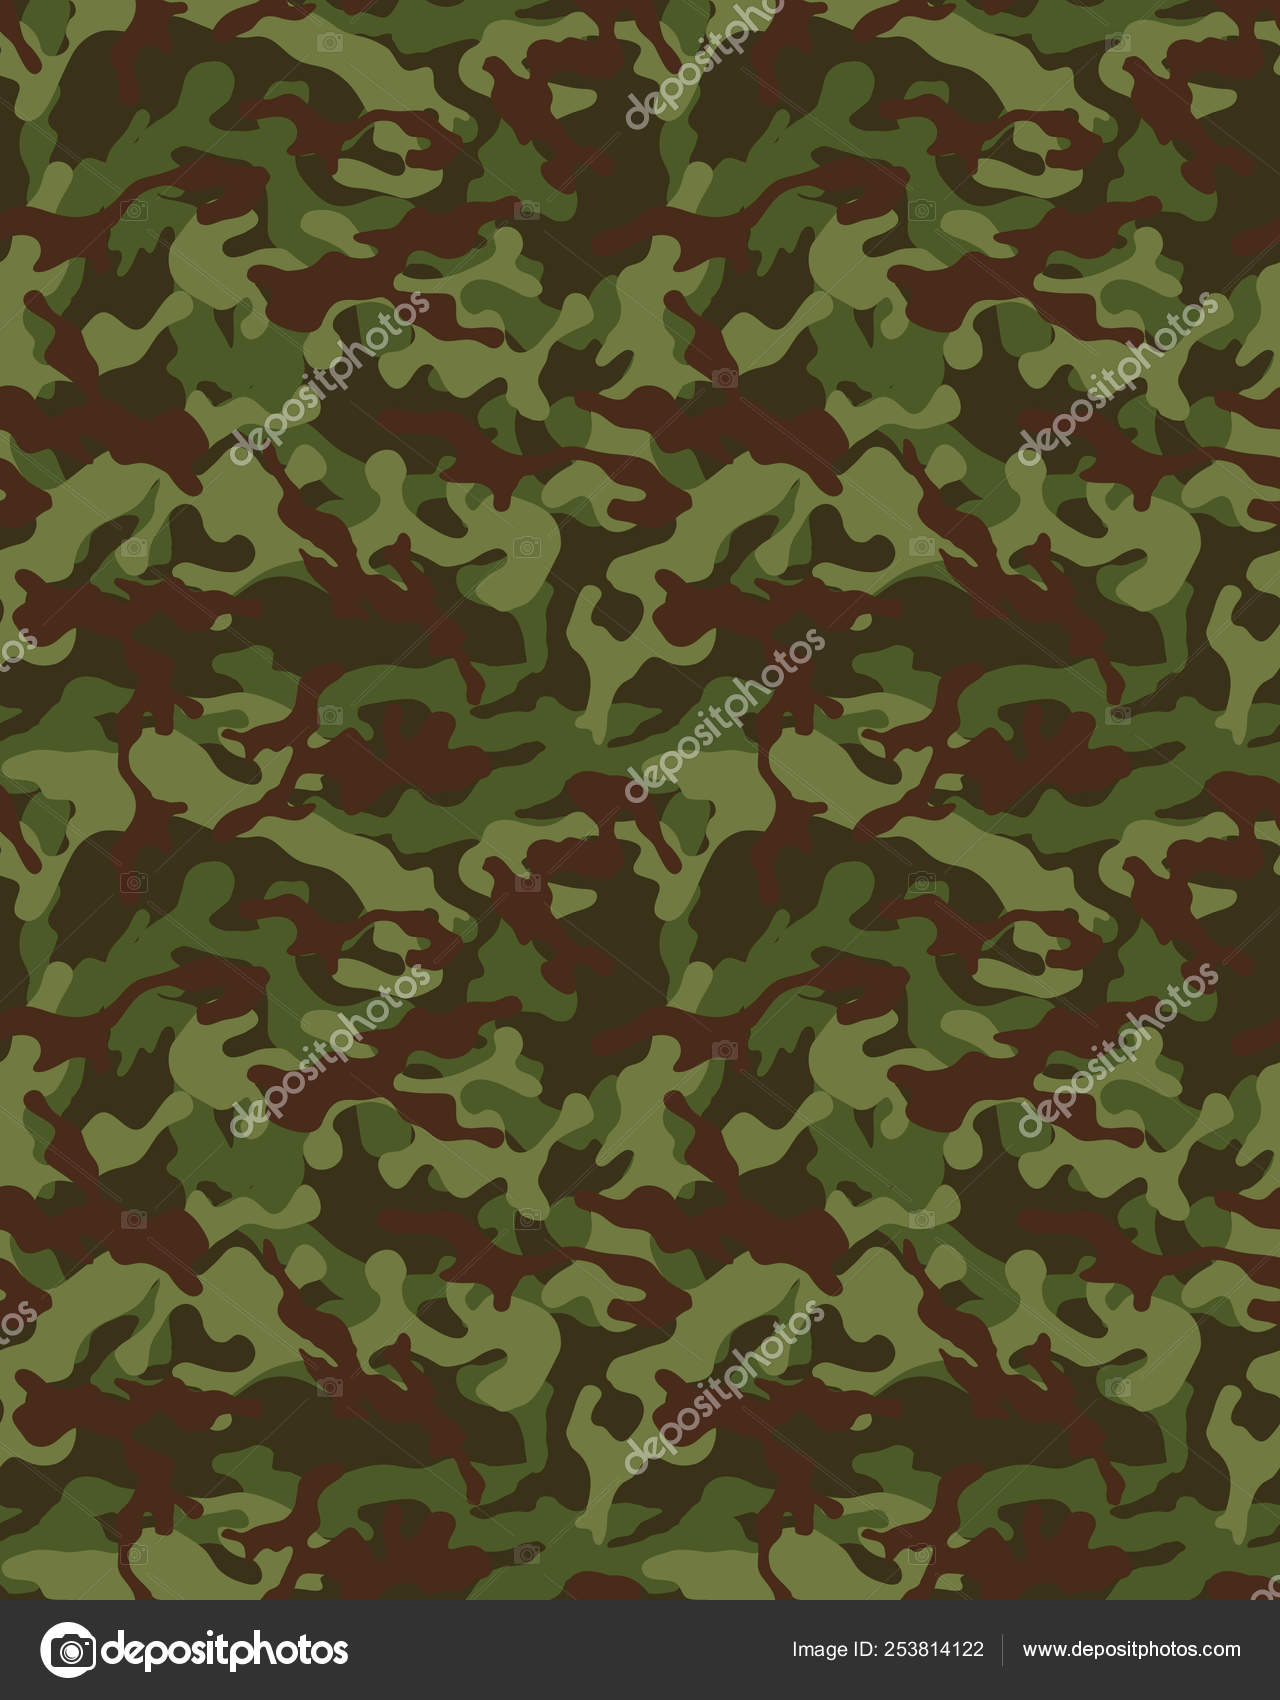 graphic regarding Camo Printable named Photographs: armed service wallpaper Camouflage Routine Seamless Armed forces